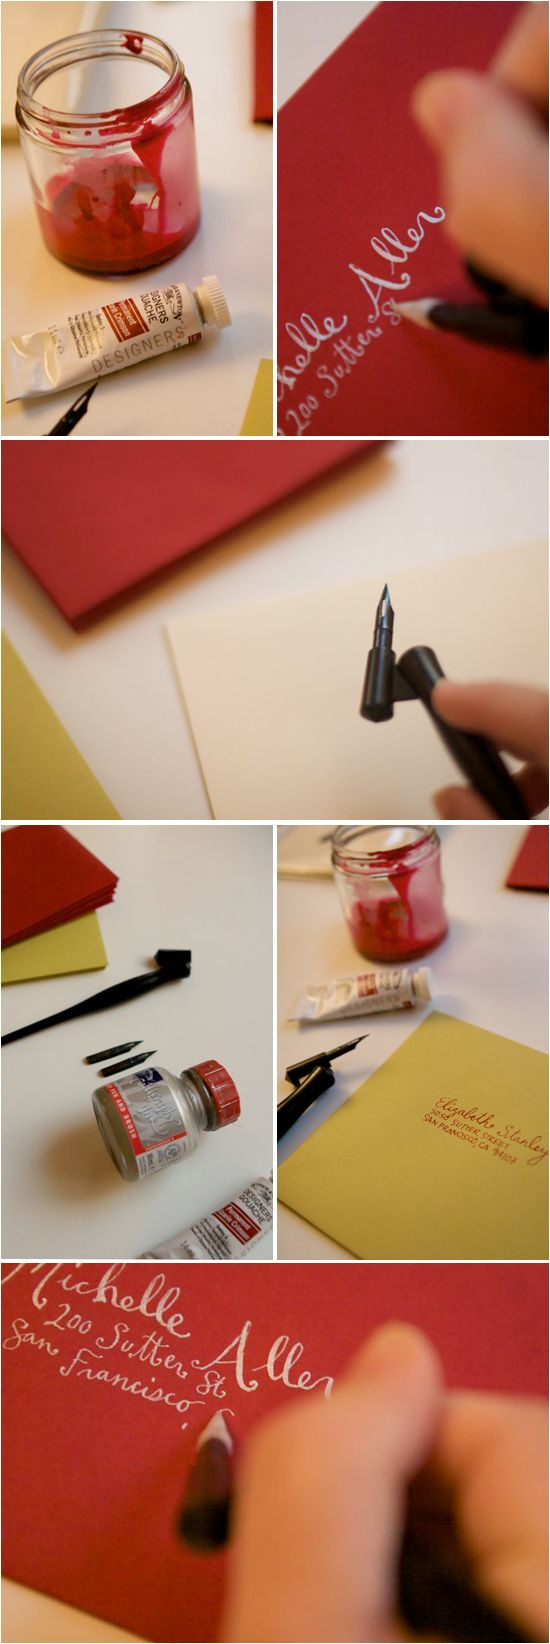 red/white#Repin By:Pinterest++ for iPad#: Calligraphy Envelope, Craft, Beginner Calligraphy, Project Wedding, Calligraphy For Beginners, Caligraphy Pens, Caligraphy For Beginners, Beginners Calligraphy, Calligraphy Pens